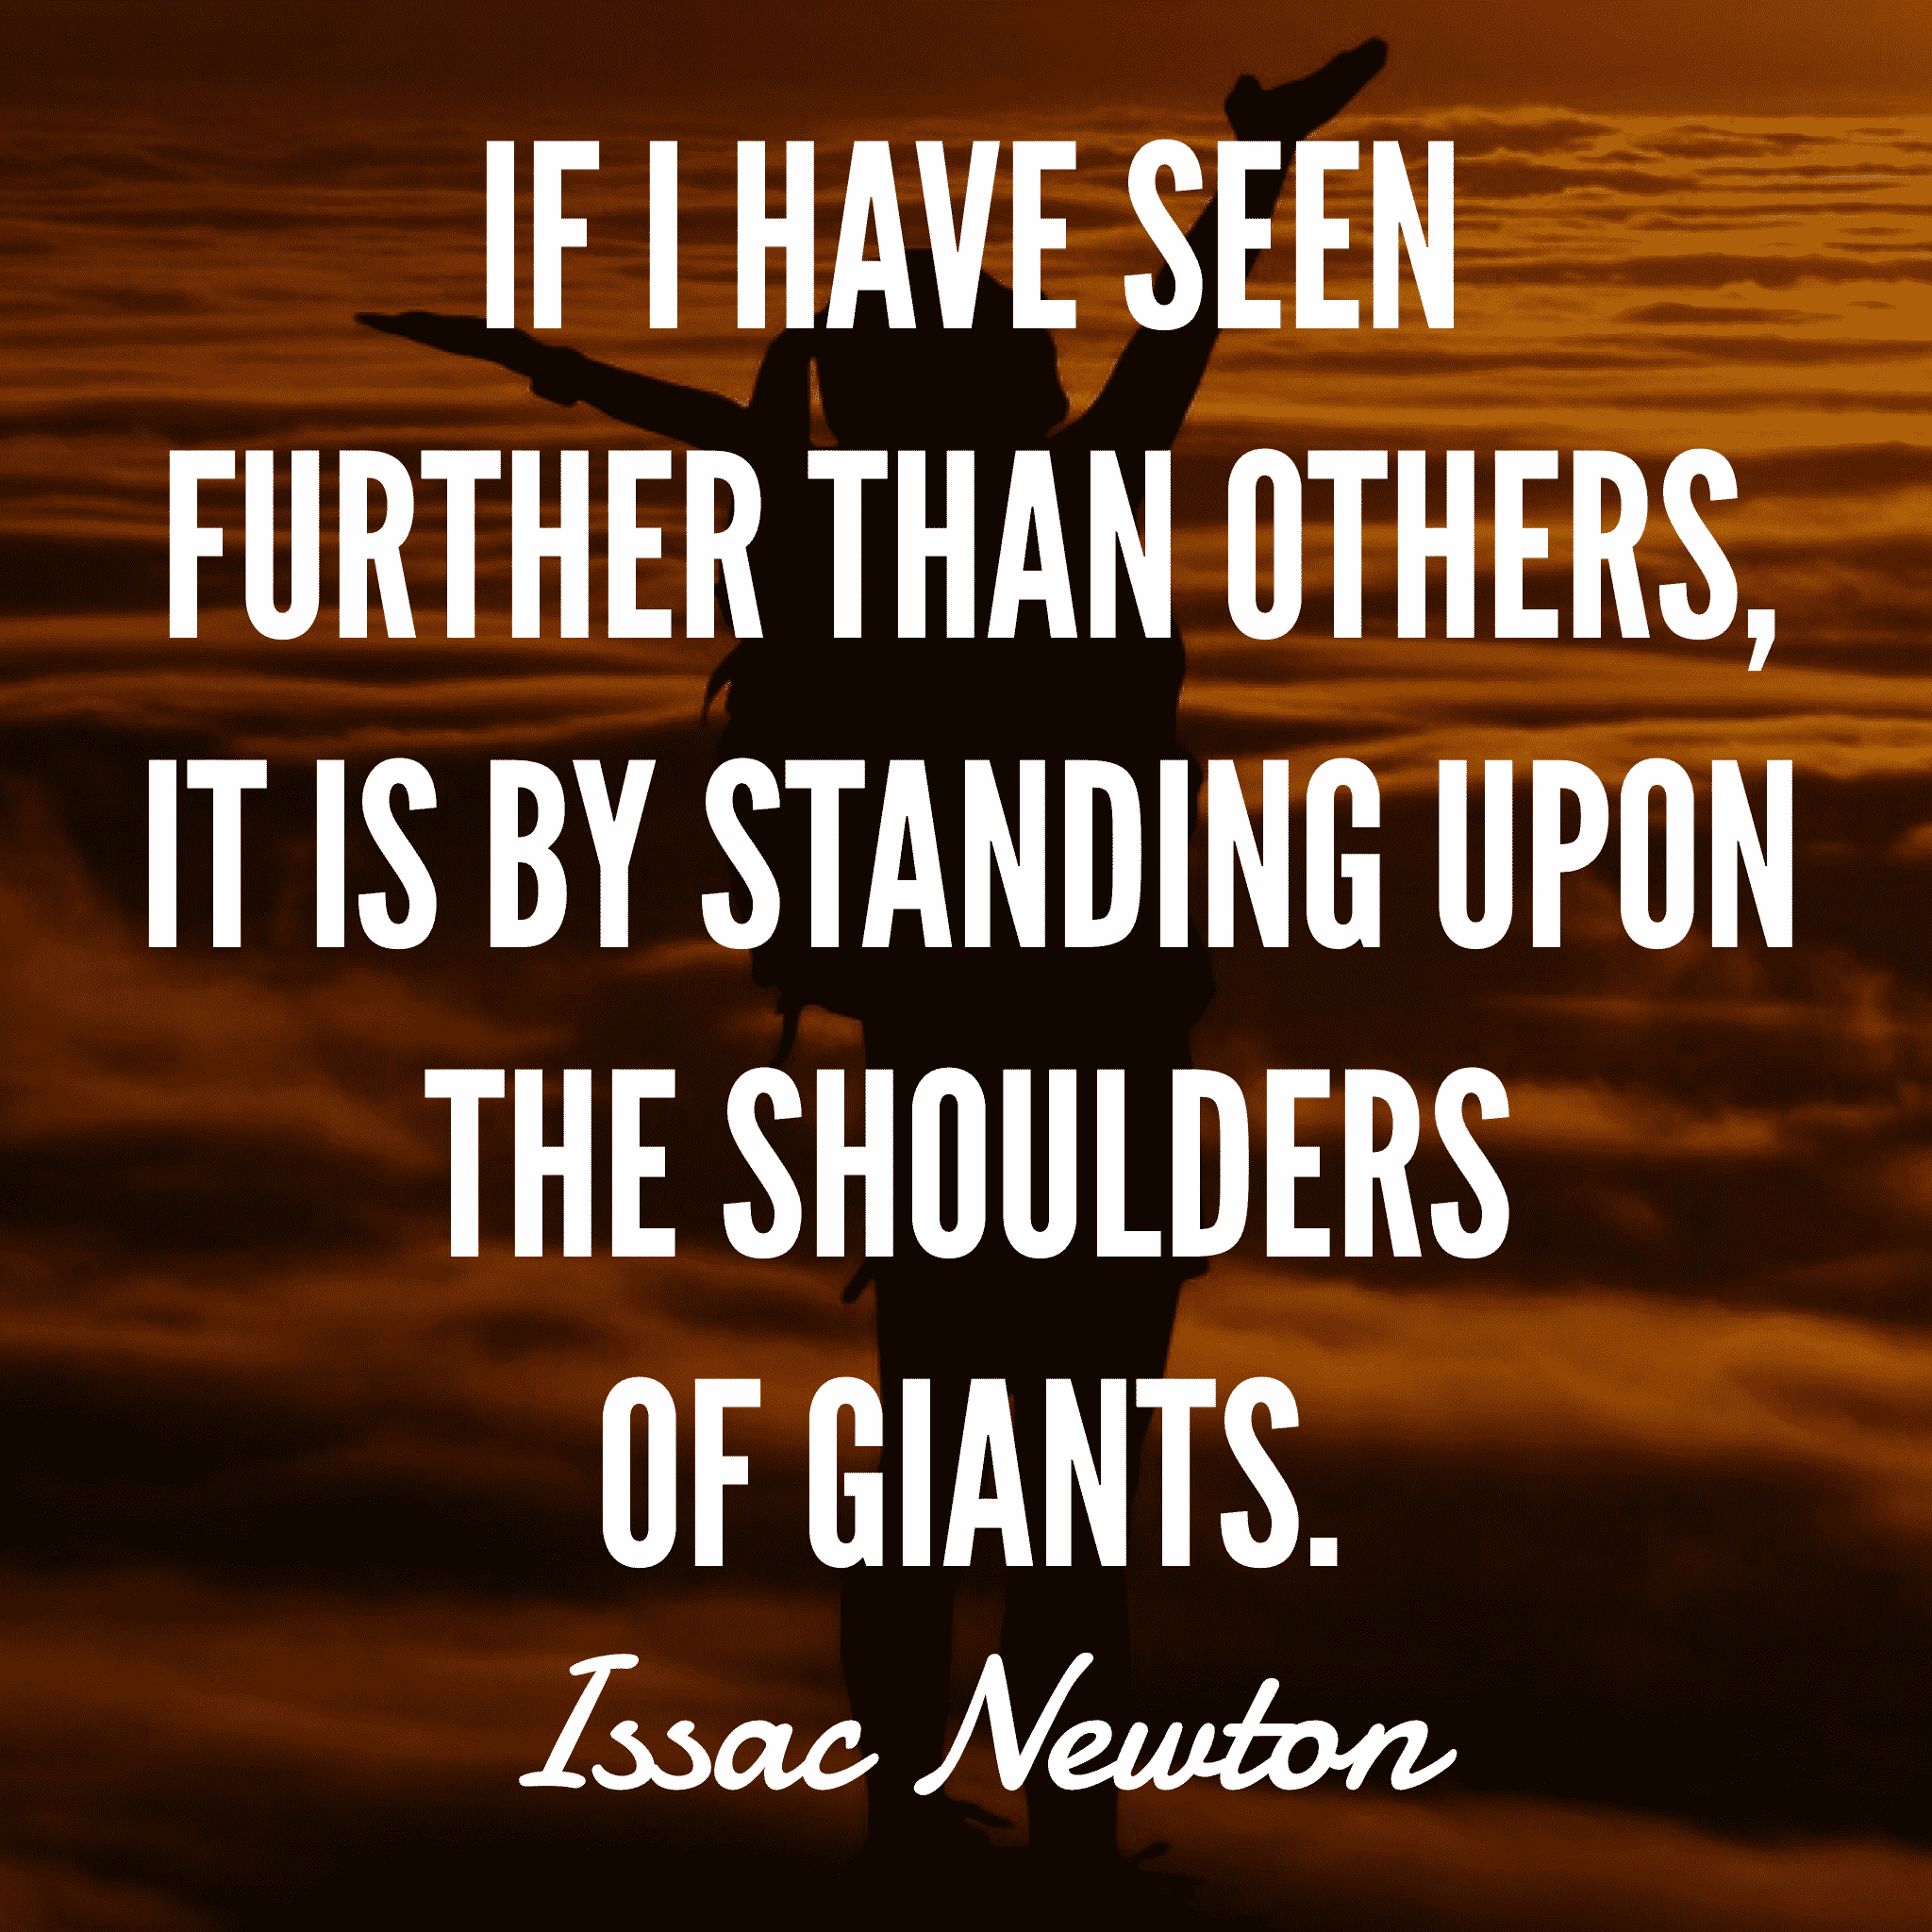 20 Of The Greatest Isaac Newton Quotes